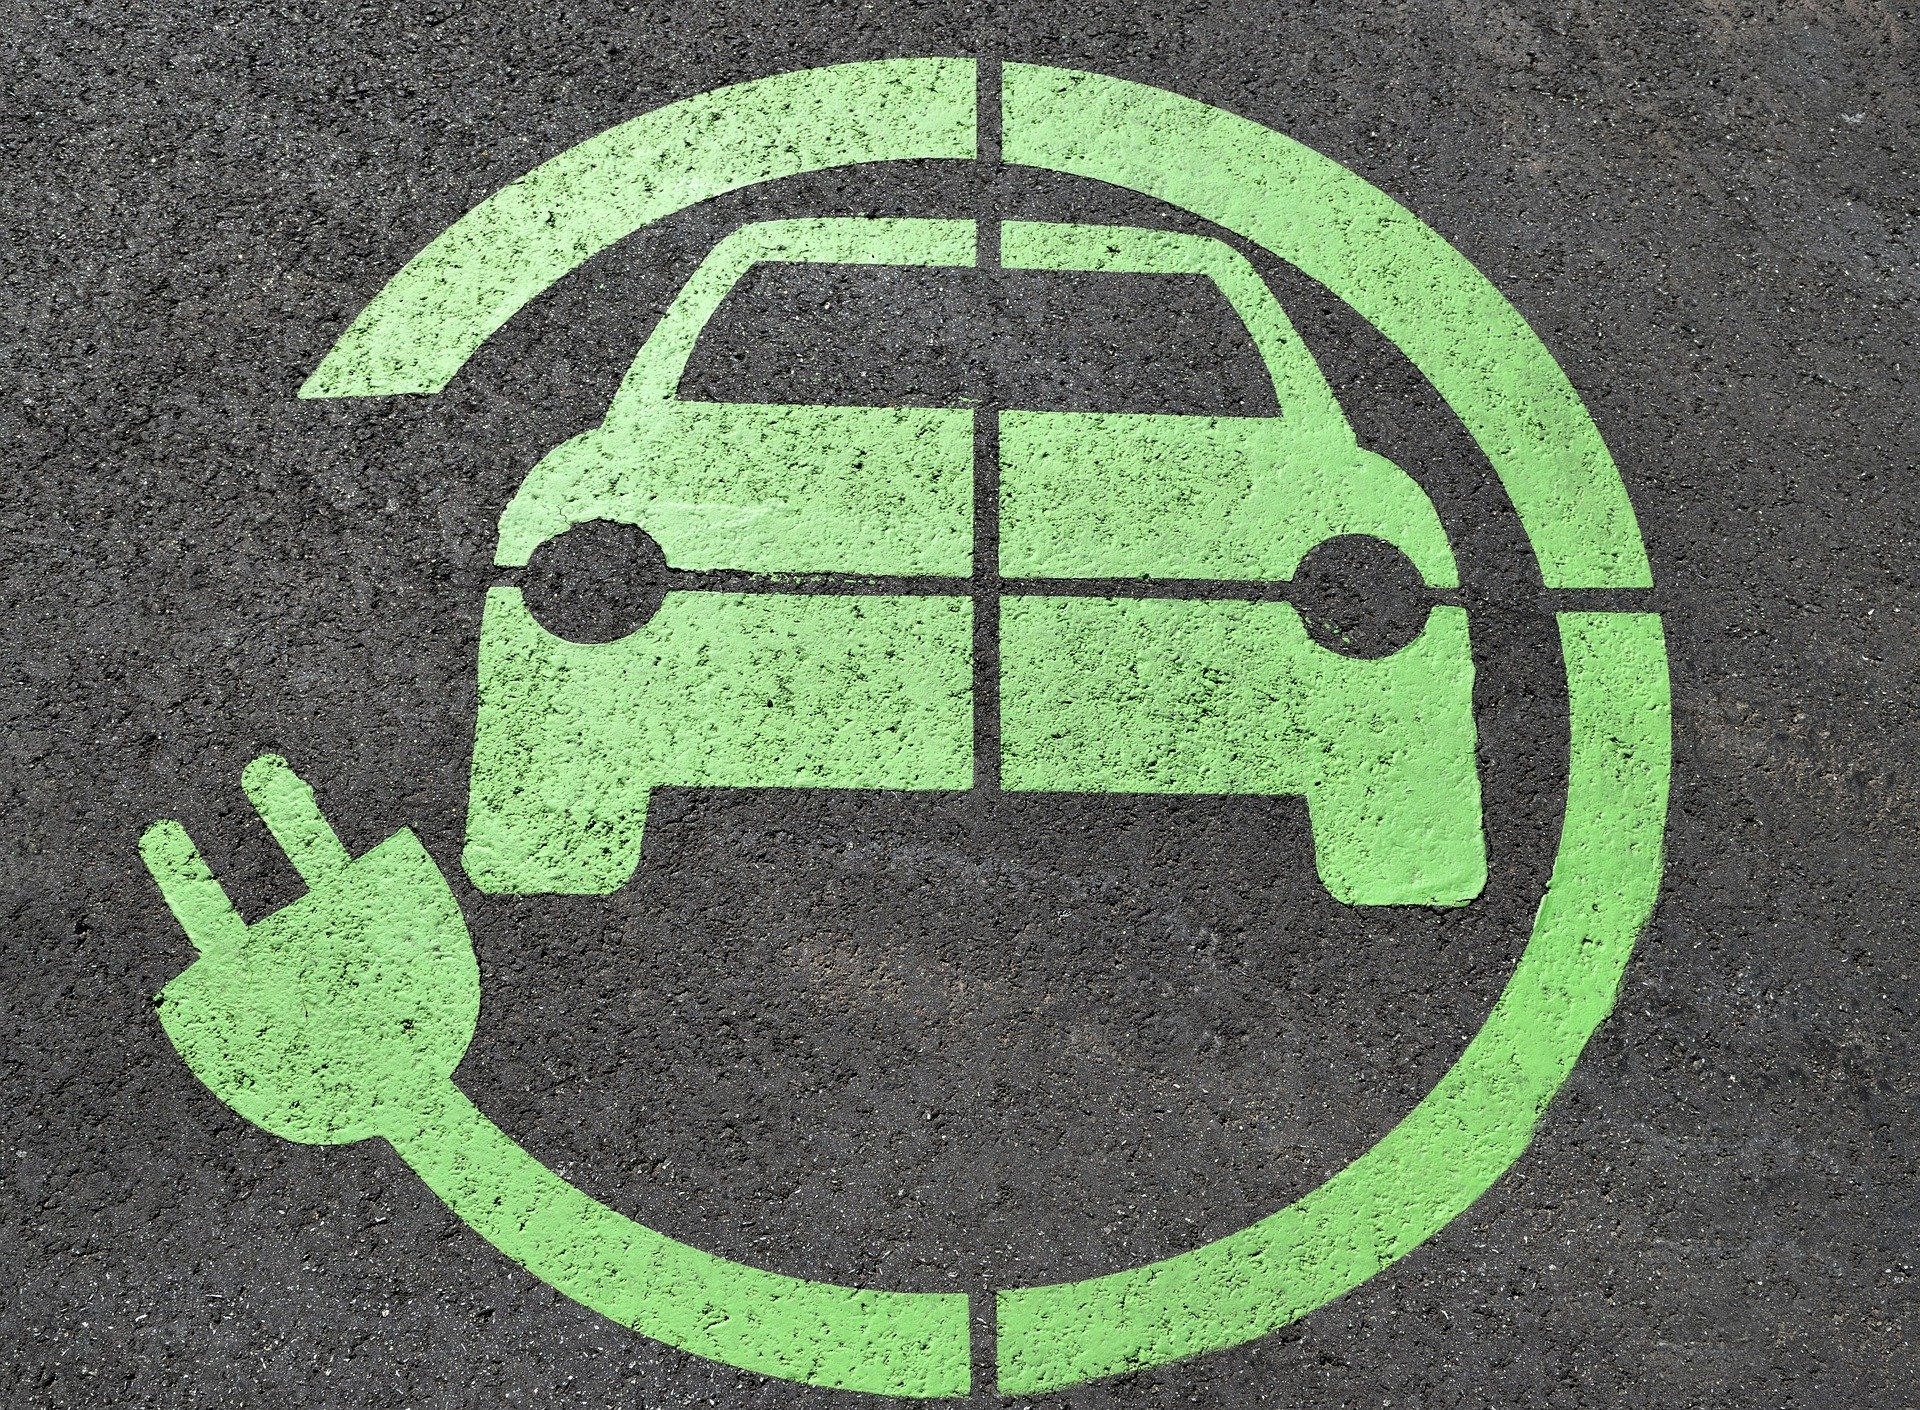 green painting on asphalt of a car with electric plug around it signifying electric vehicle parking